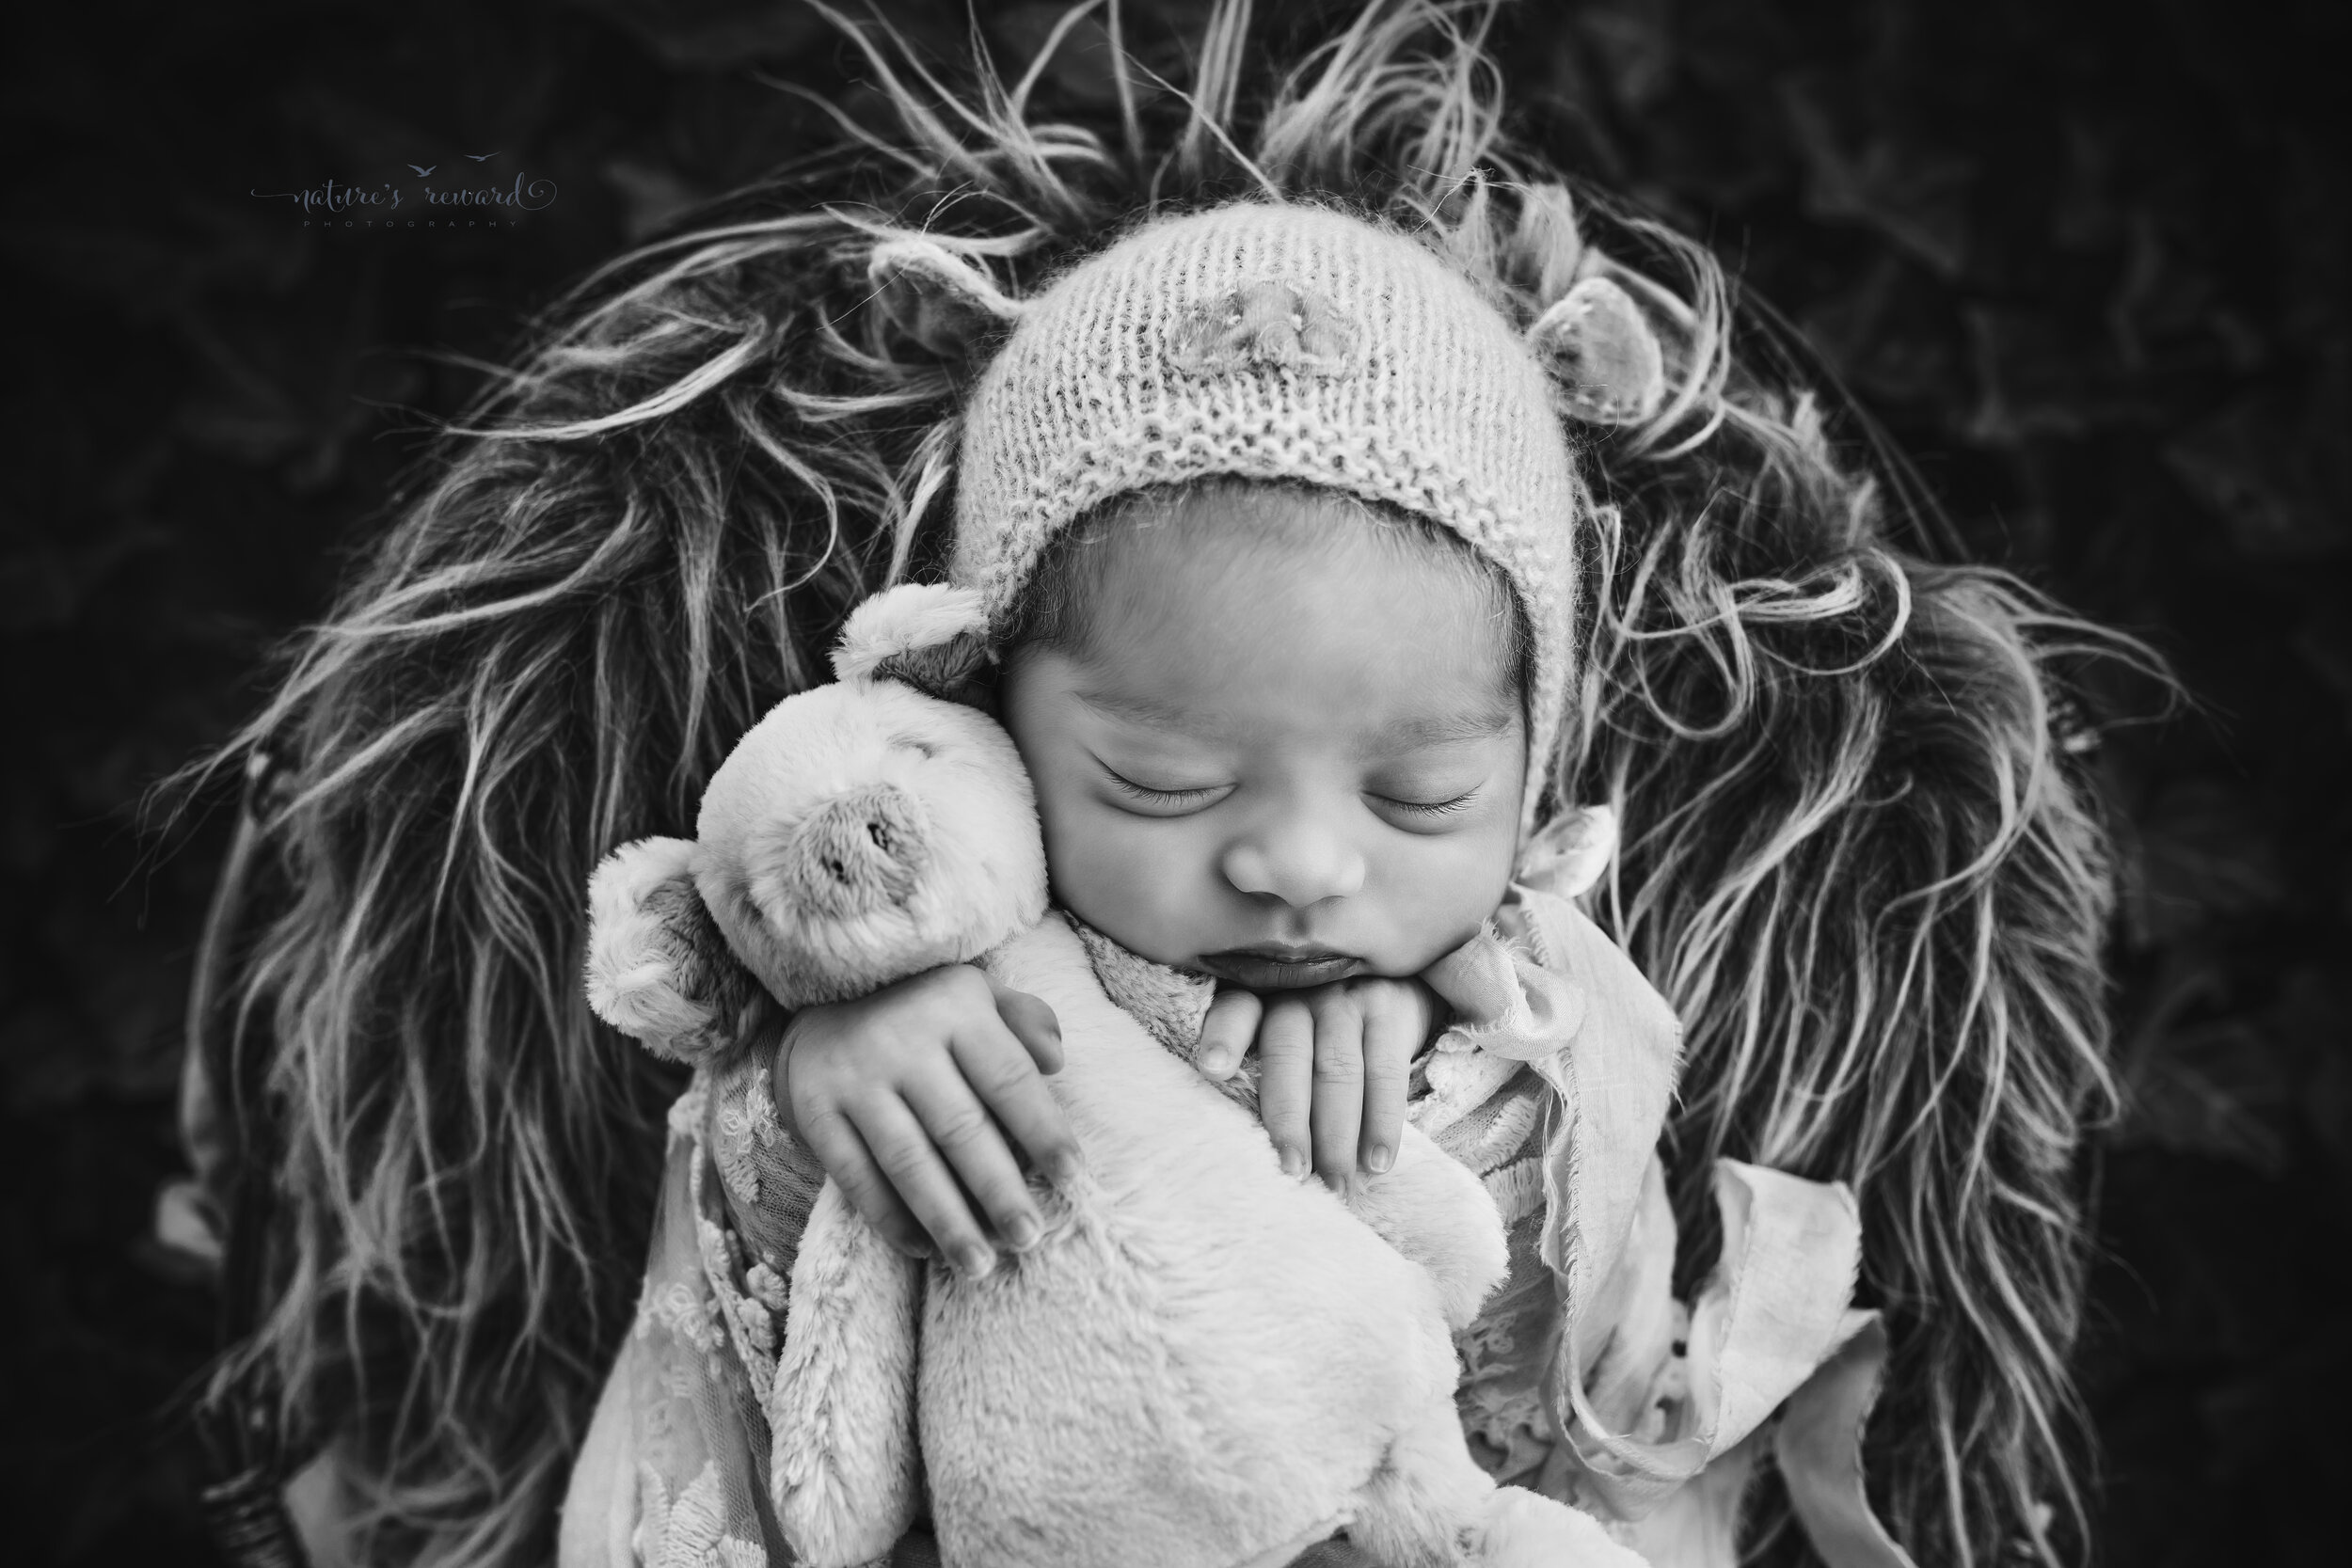 Black and White portrait of a baby girl swaddled in wearing a pig bonnet (the year of the pig) in a garden of ivy, a newborn portrait by Nature's Reward Photography